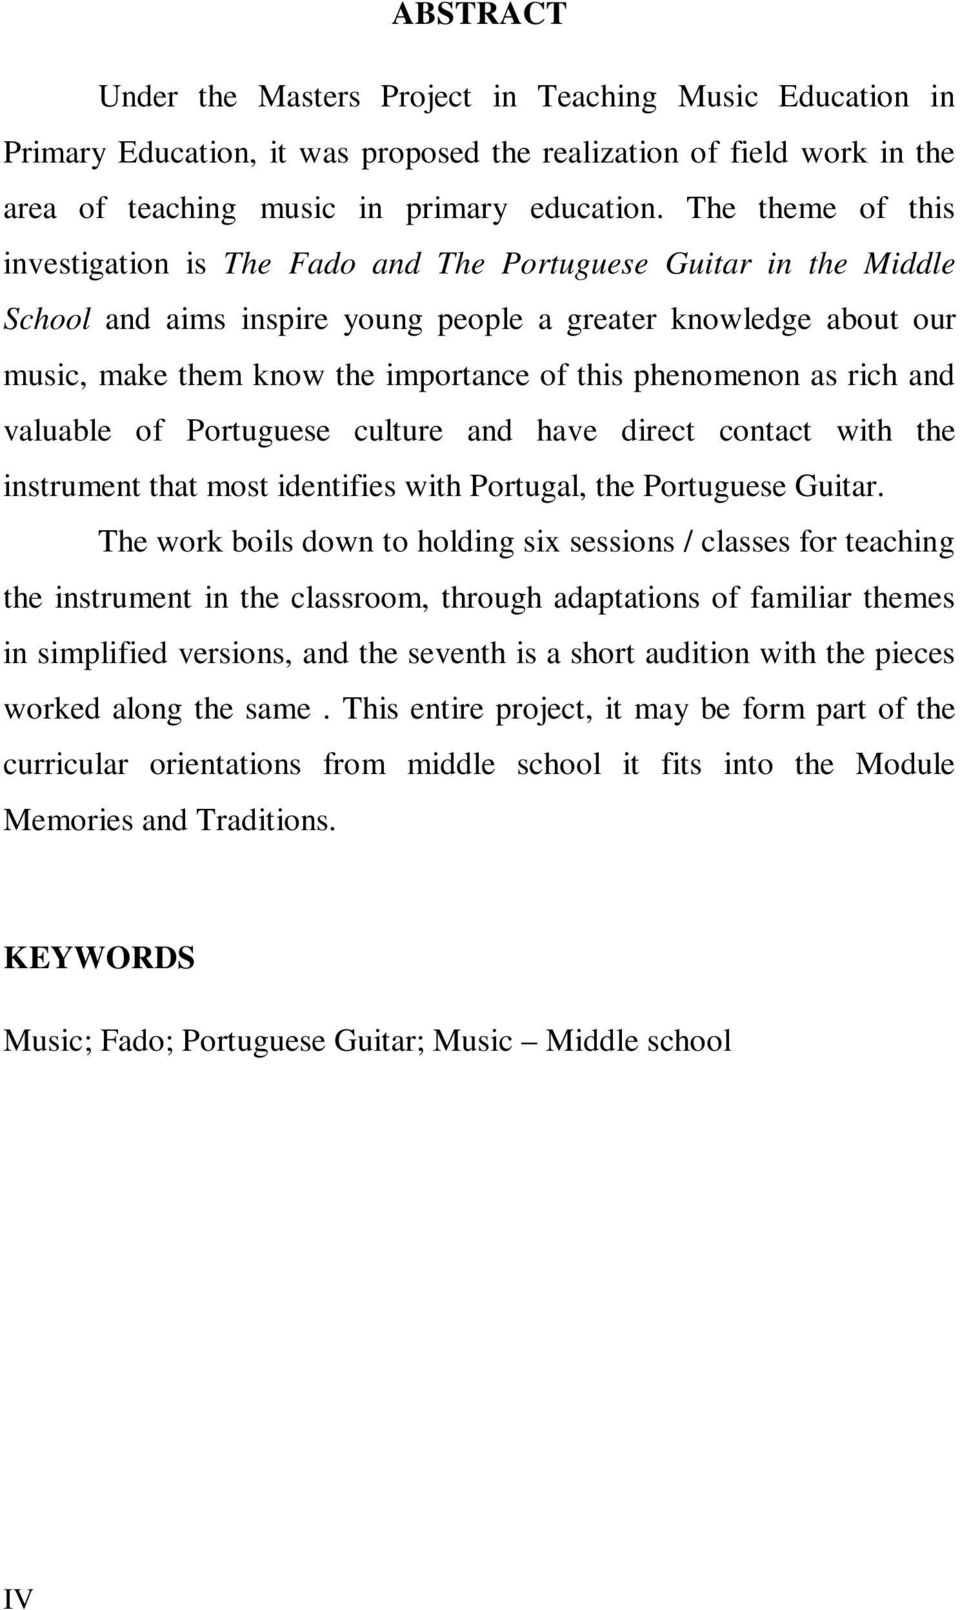 phenomenon as rich and valuable of Portuguese culture and have direct contact with the instrument that most identifies with Portugal, the Portuguese Guitar.